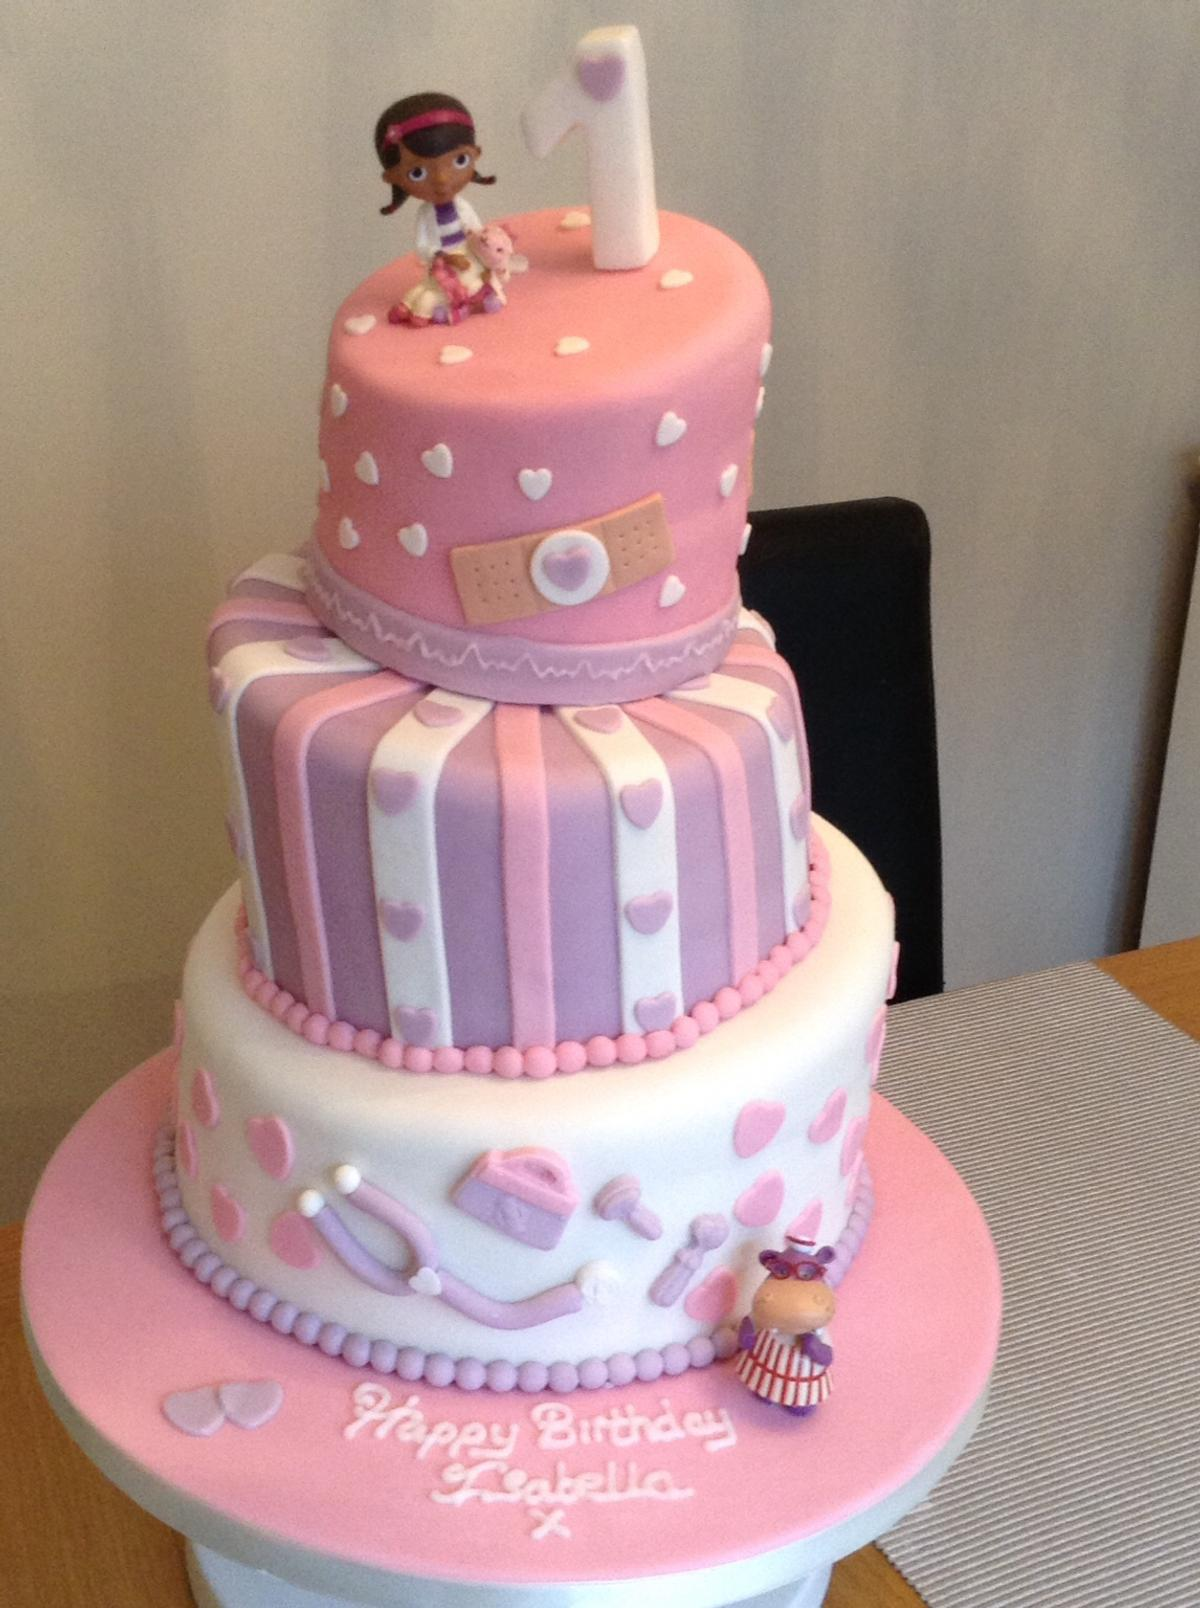 Stupendous Cake Made To Order From In Me19 Malling For 35 00 For Sale Shpock Personalised Birthday Cards Veneteletsinfo